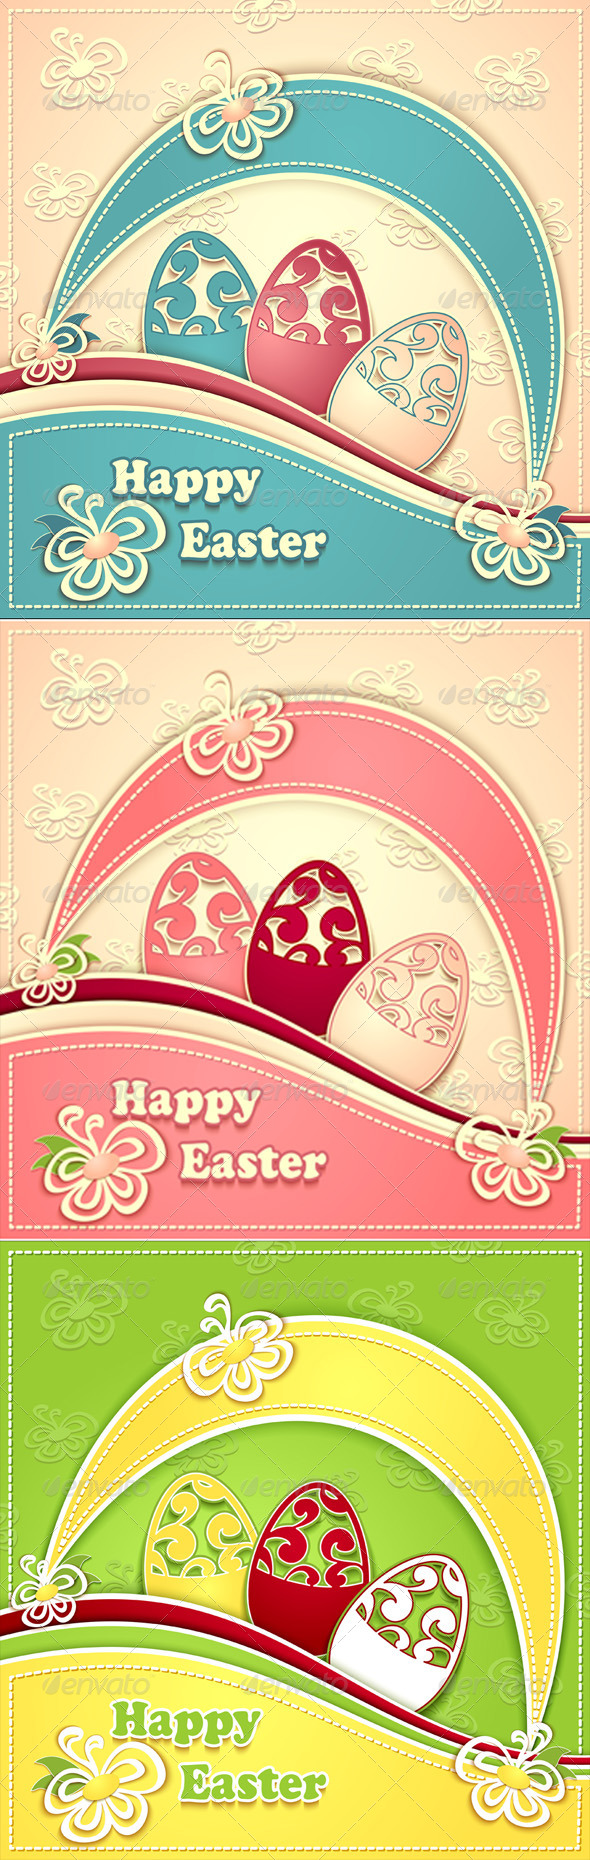 Post Card with Paper Easter Eggs Flowers - Seasons/Holidays Conceptual